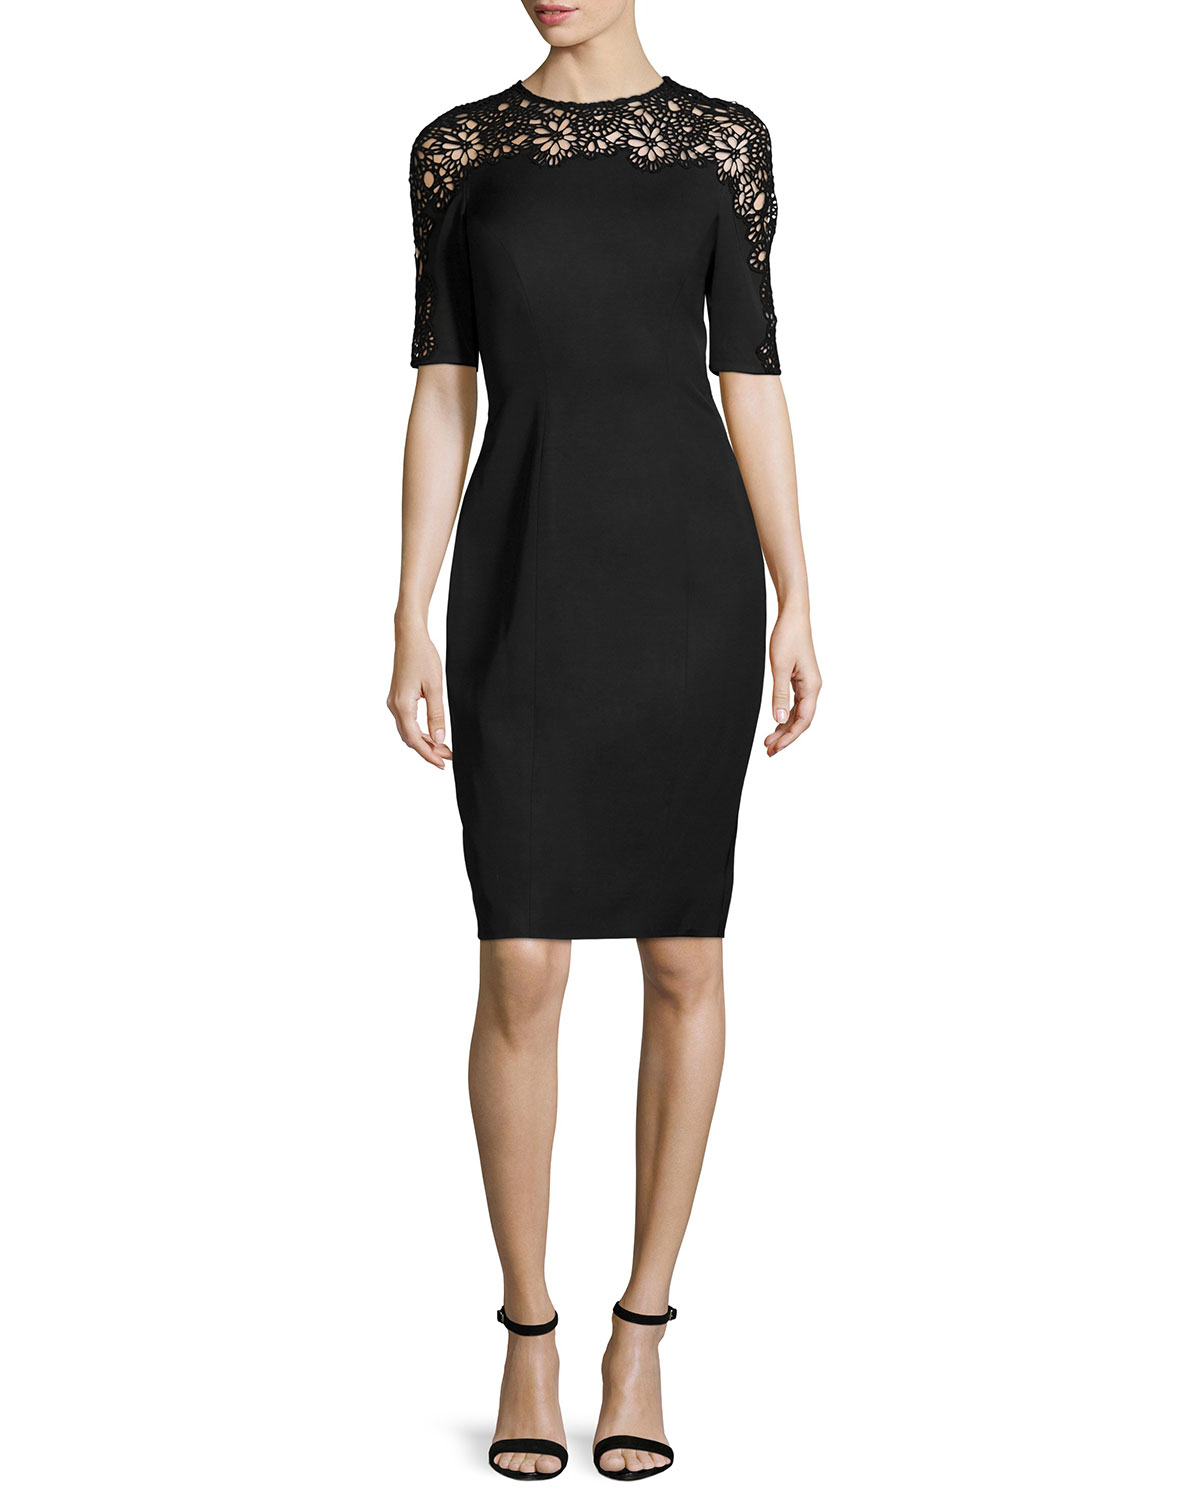 Lyst Lela Rose Short Sleeve Lace Inset Sheath Dress In Black